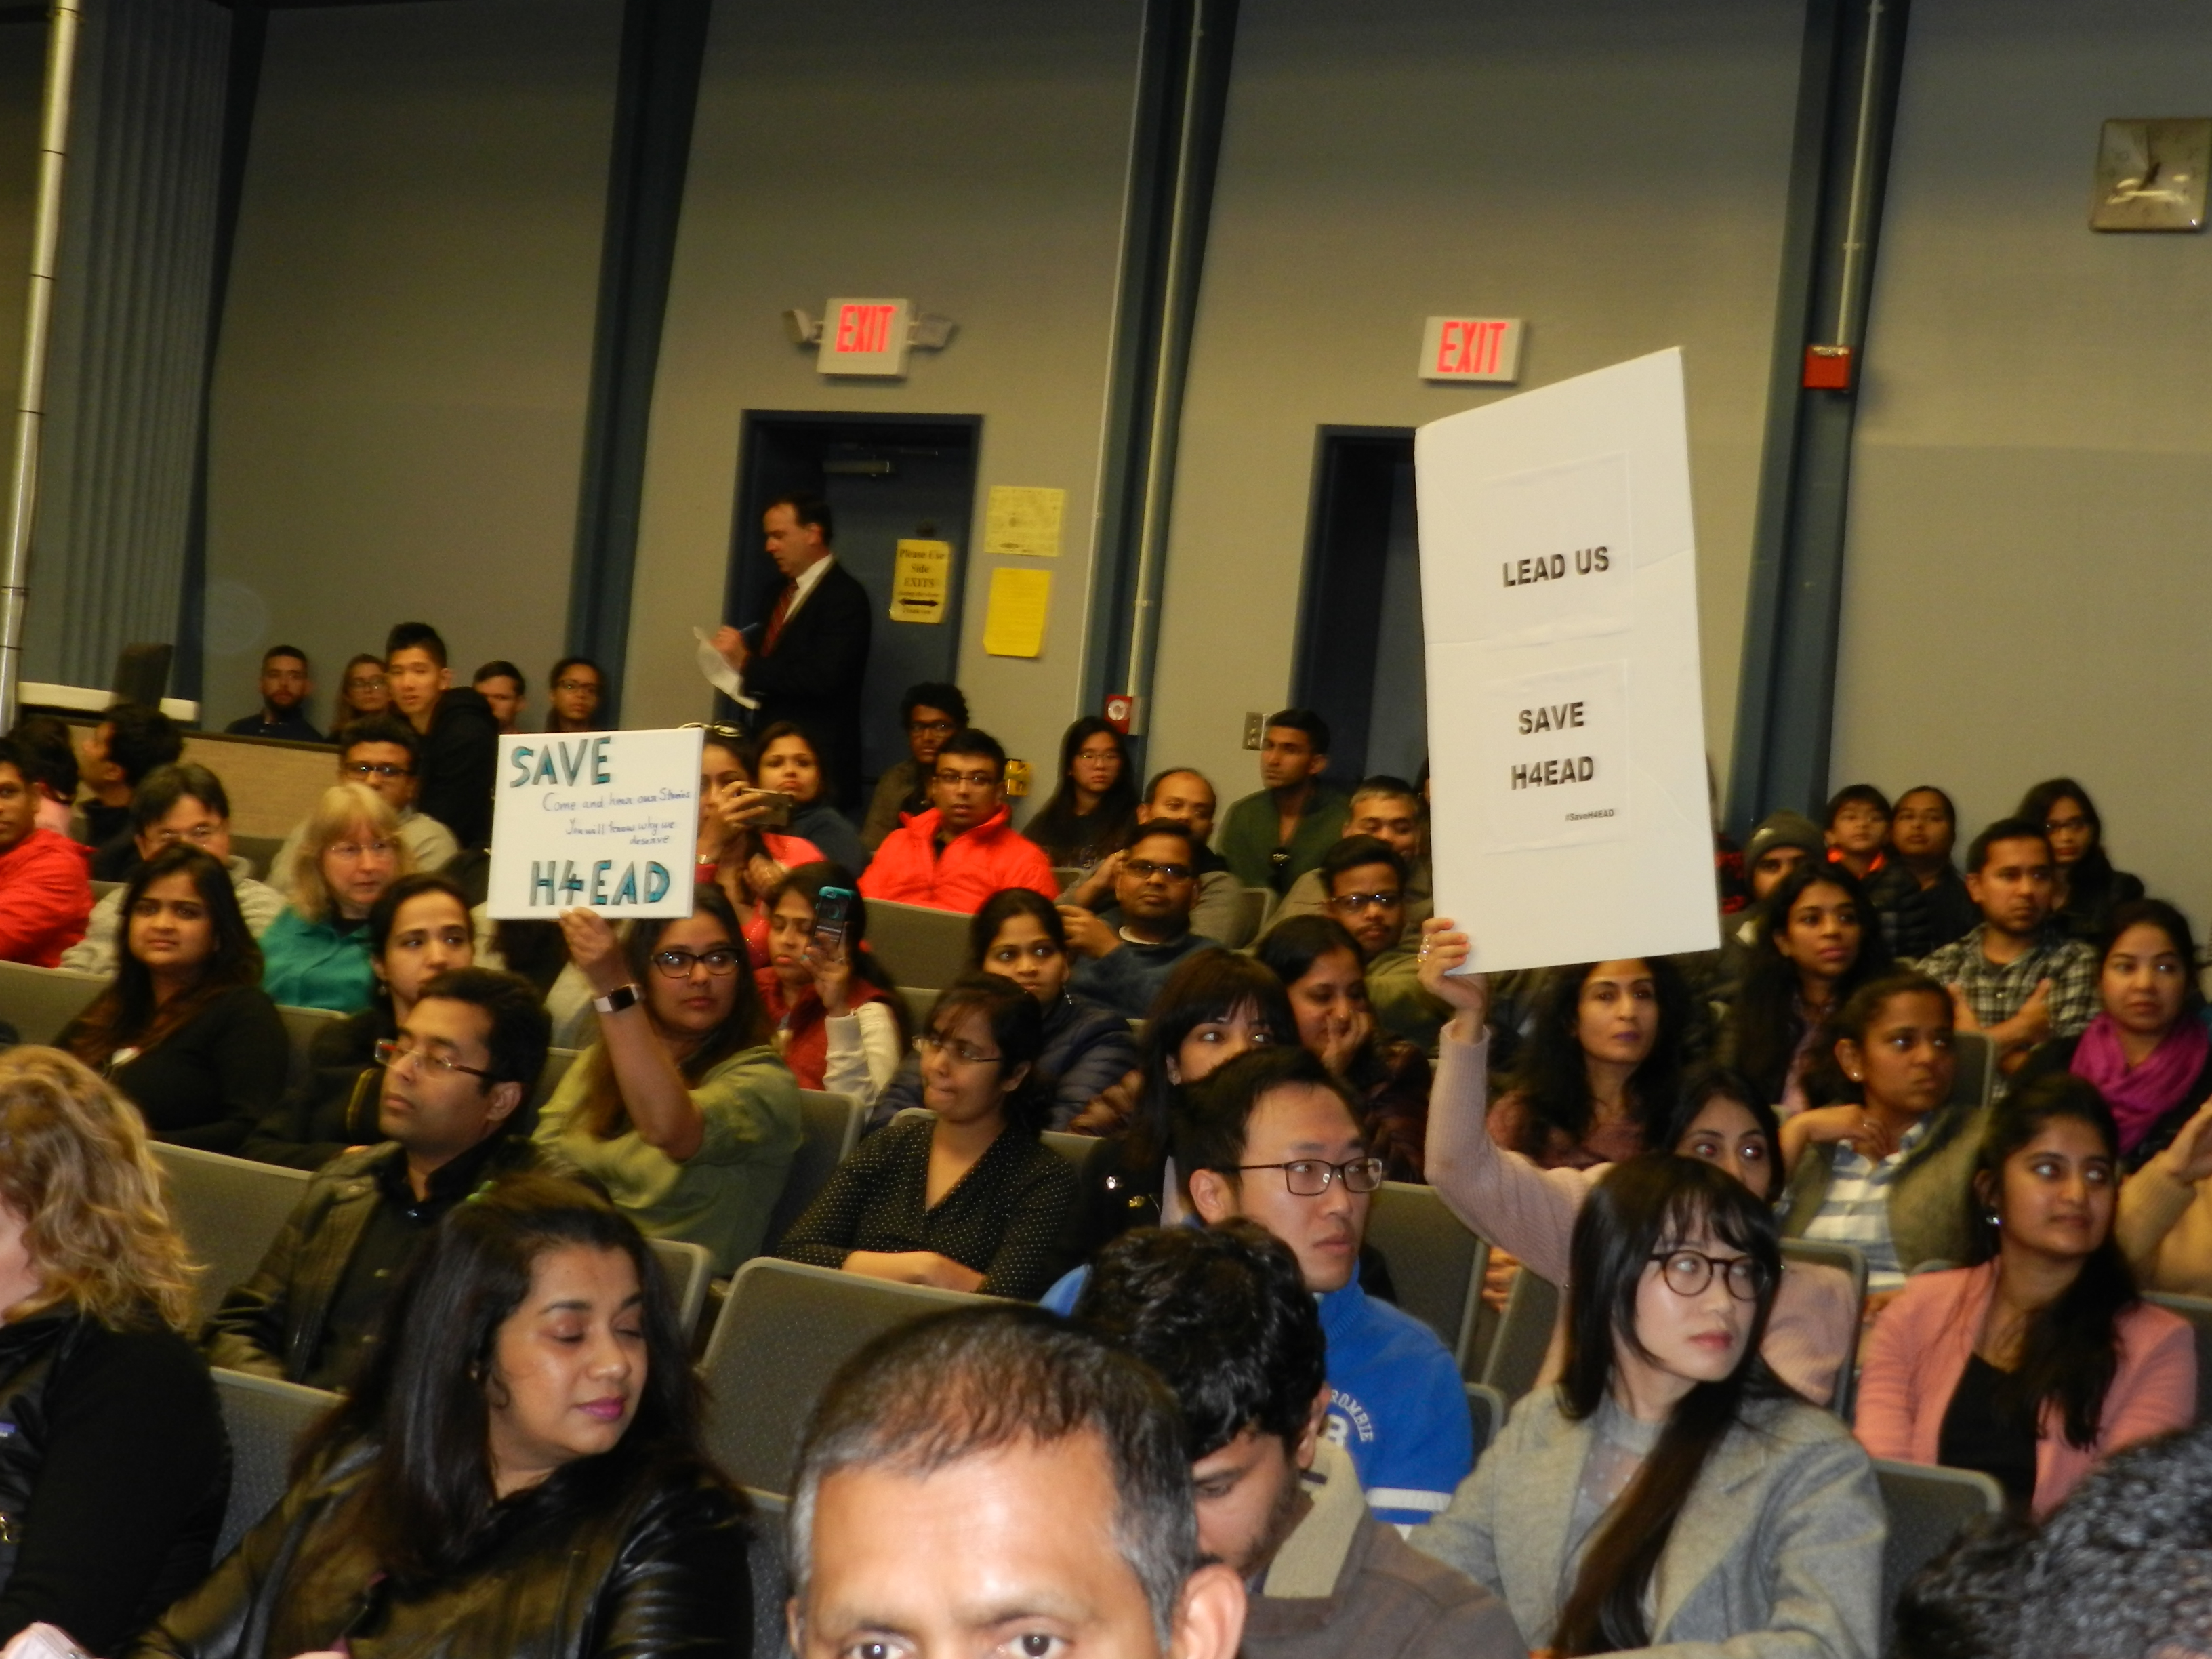 Visa issues dominate Ro Khanna town hall - Indica News